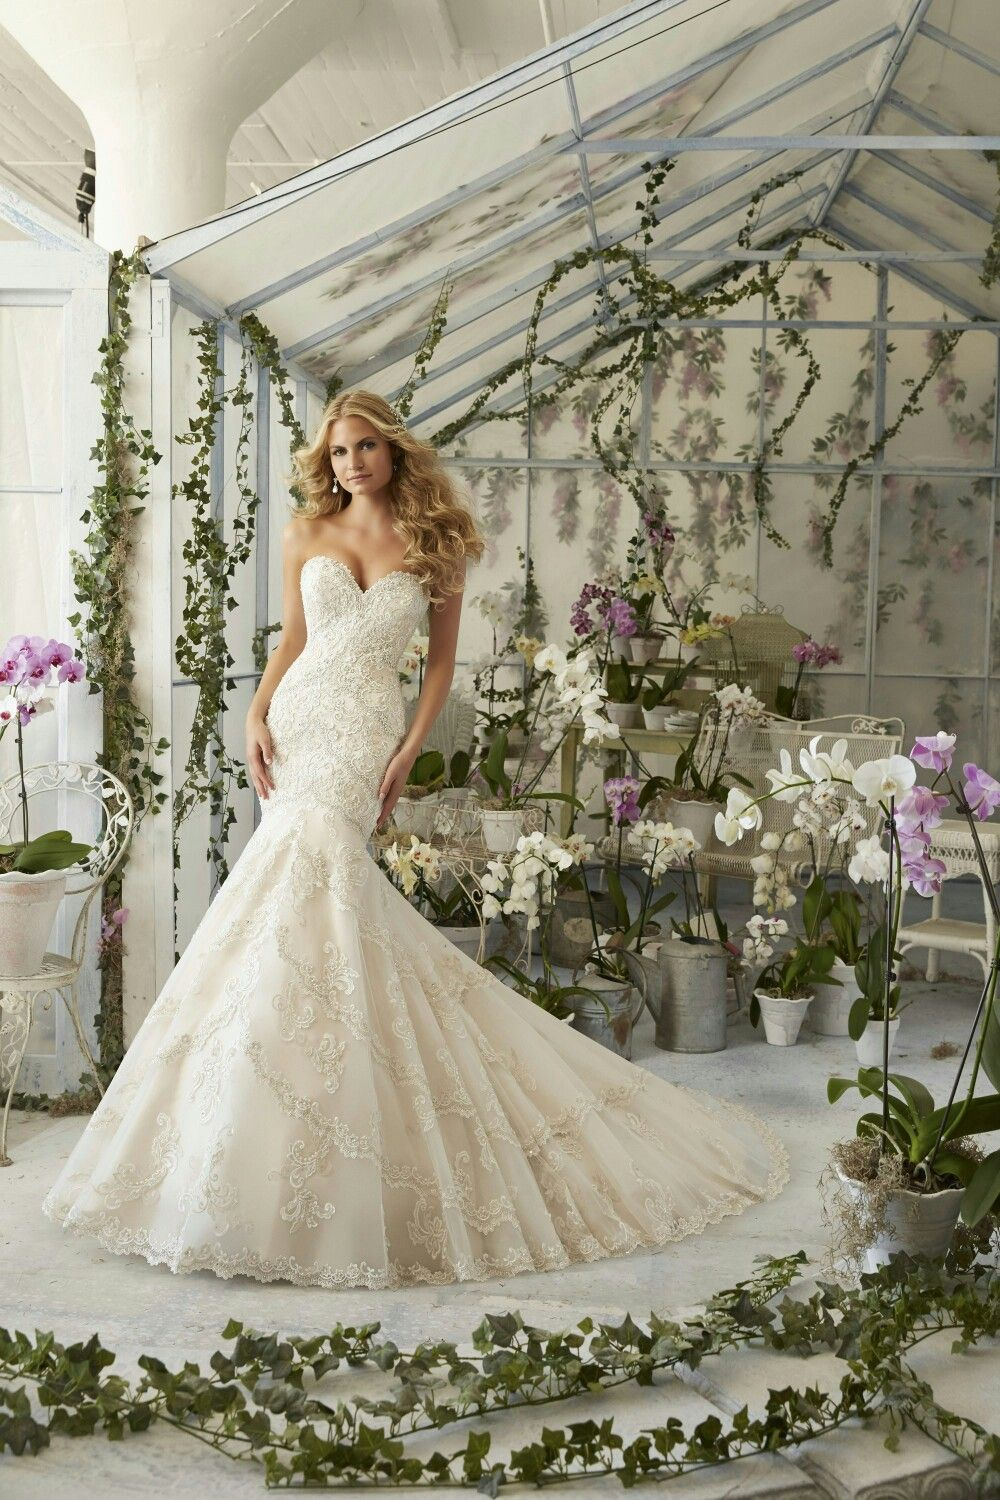 Mermaid style dressve the beadworks wedding ideas mori lee bridal 2801 morilee bridal by madeline gardner mockingbird bridall dallas tx bridal gowns bridesmaids wedding dresses dallas texas ombrellifo Image collections